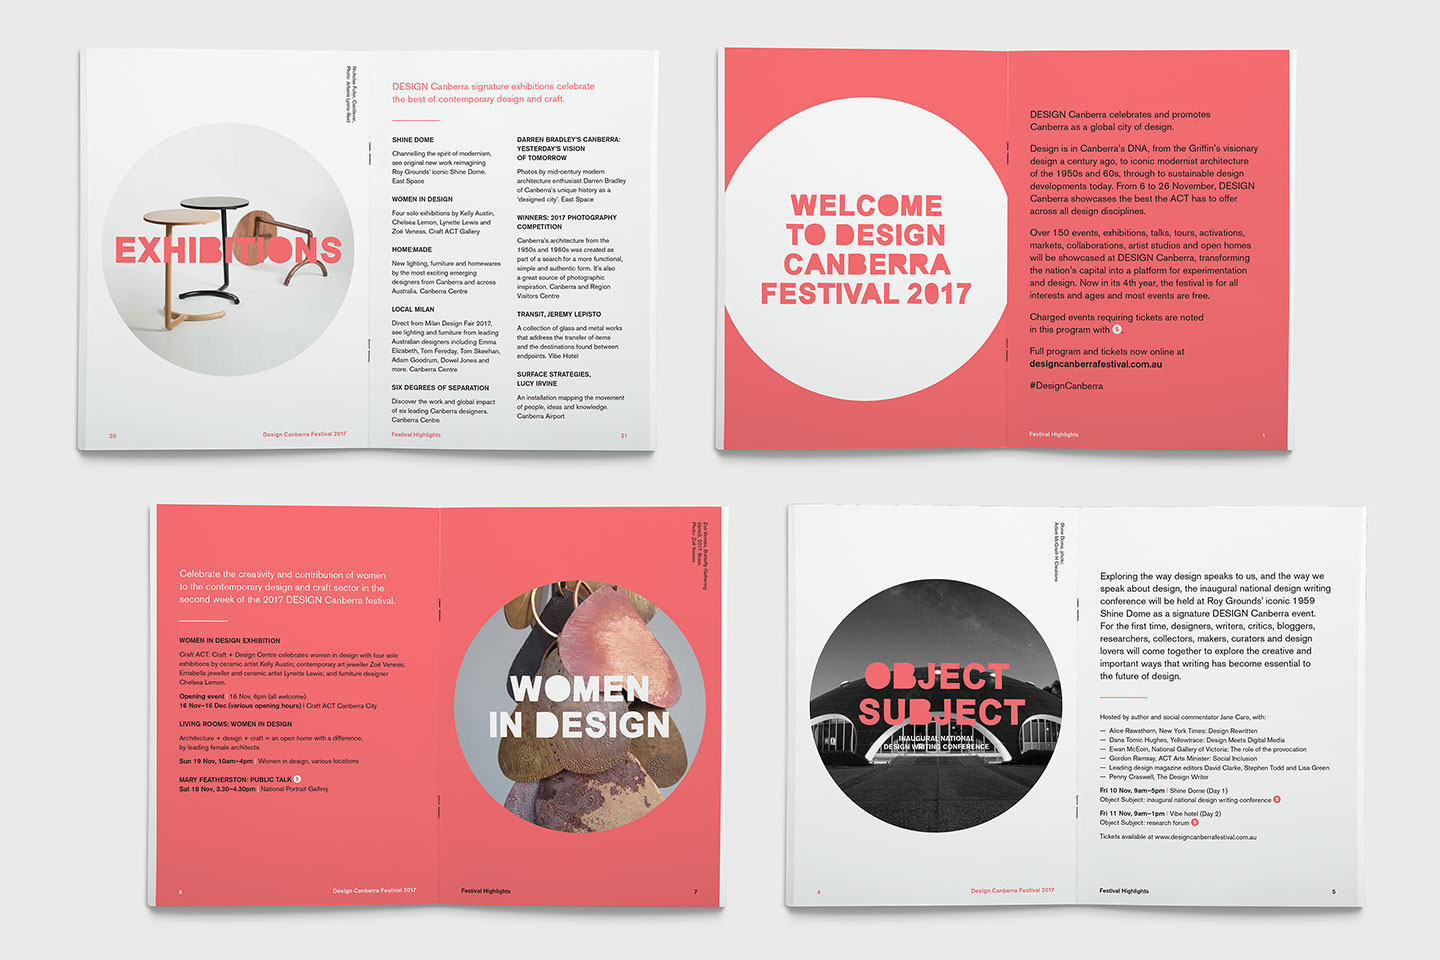 Event design collateral executed by CRE8IVE